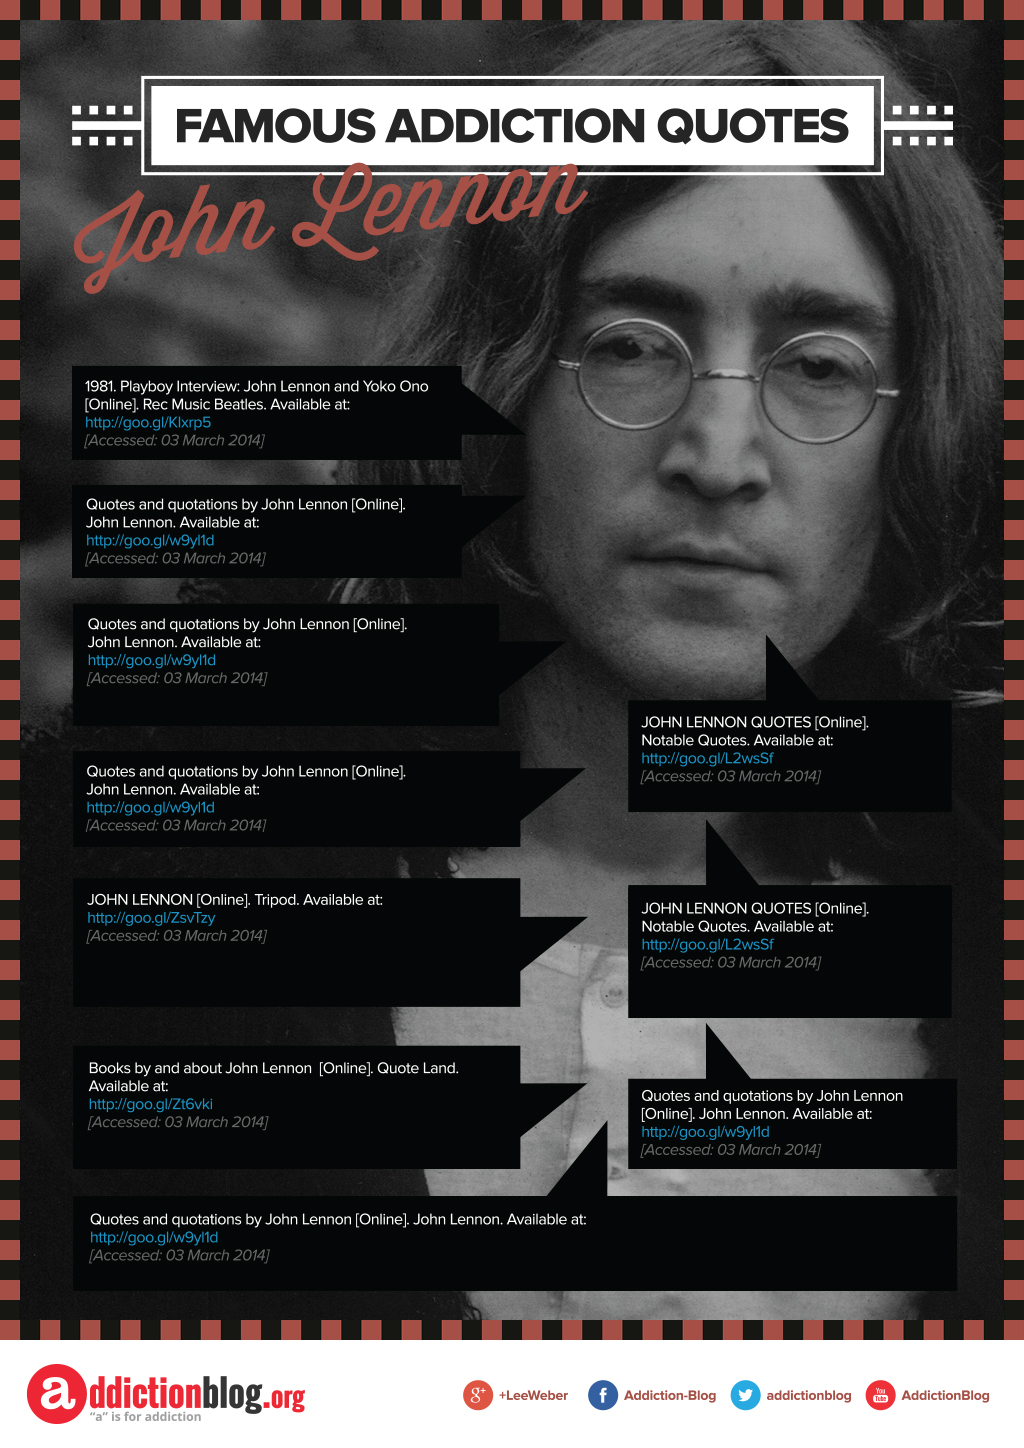 John Lennon Quotes About Drugs Infographic